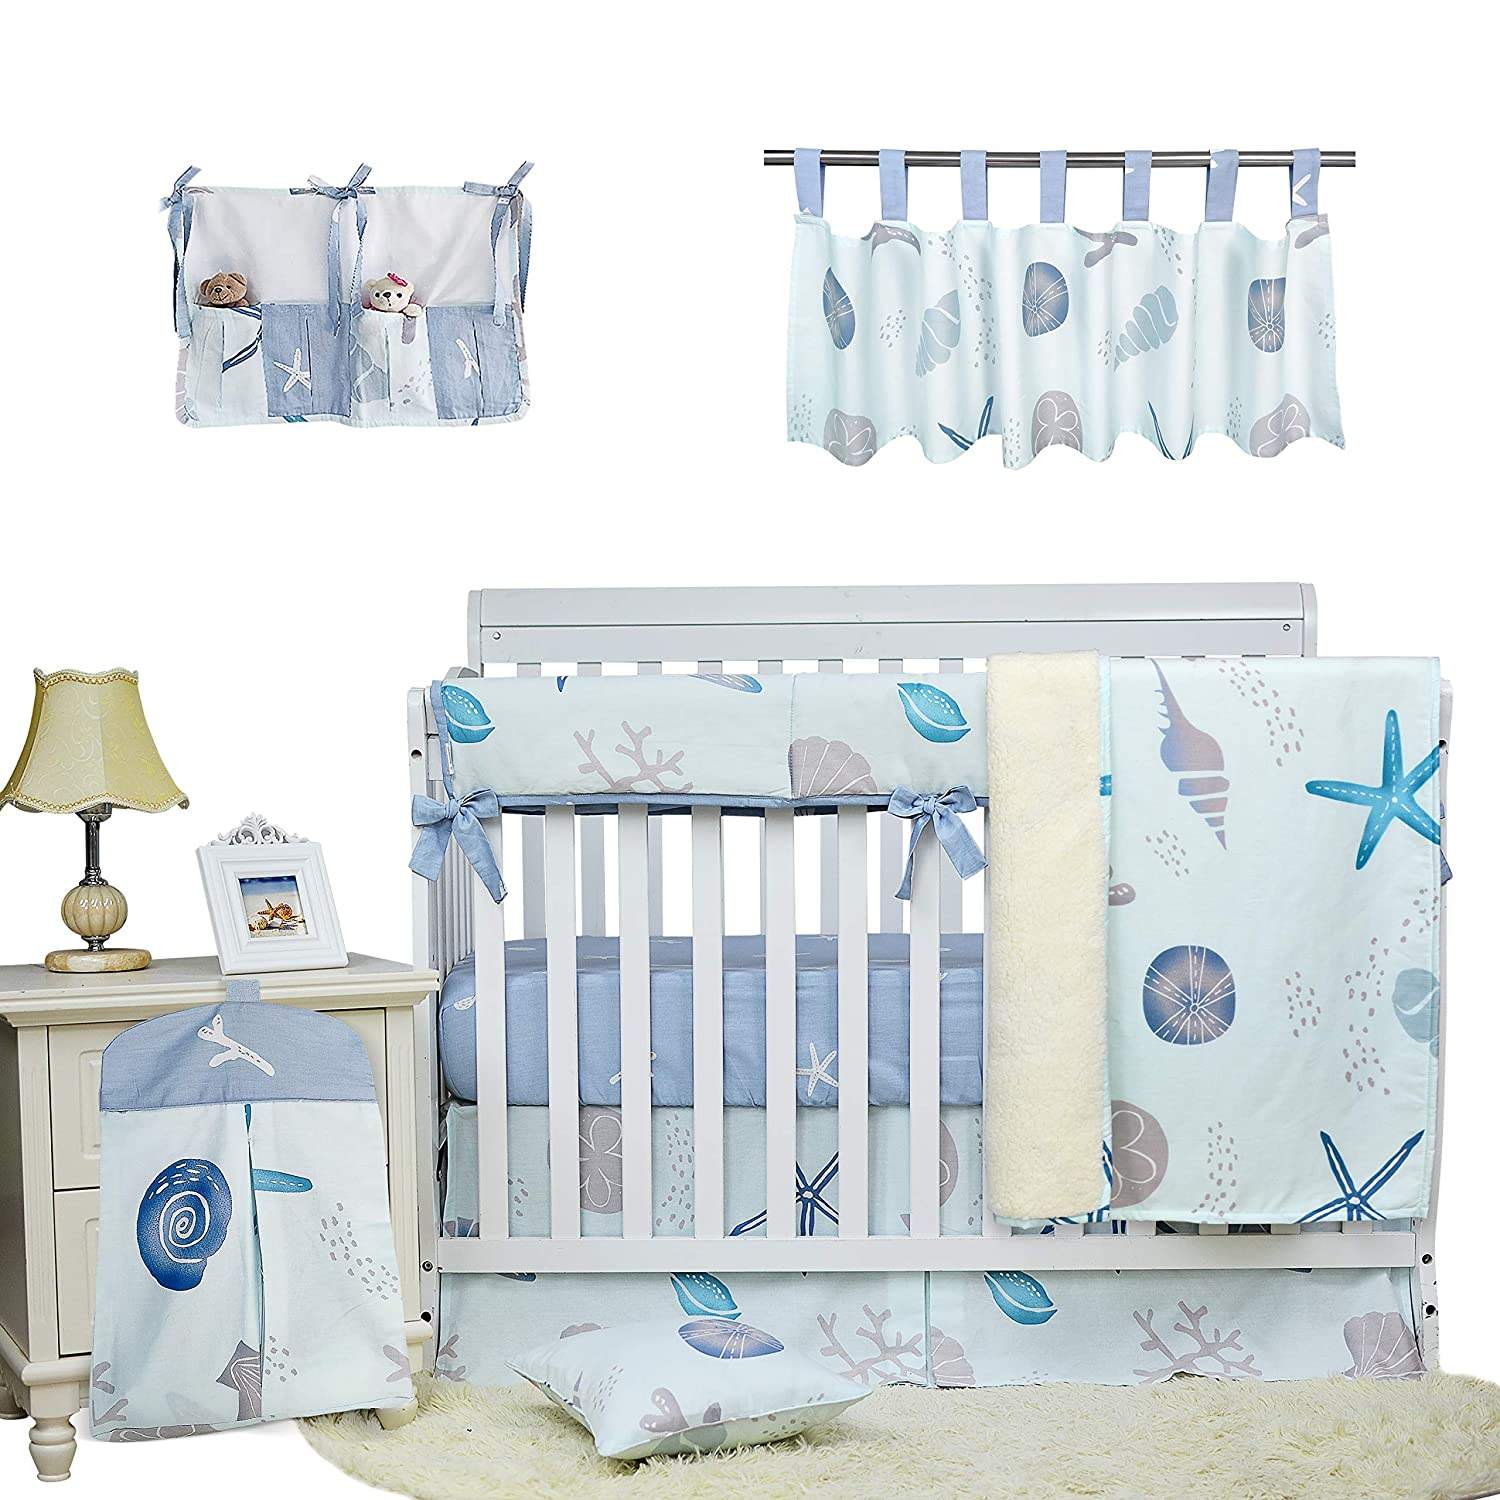 Amazon Com Brandream Baby Boys Crib Bedding Set Blue White Beach Theme Nautical Nursery Bedding With Starfish Seashell 9 Piece Cradle Set With Long Rail Cover 100 Cotton Kitchen Dining